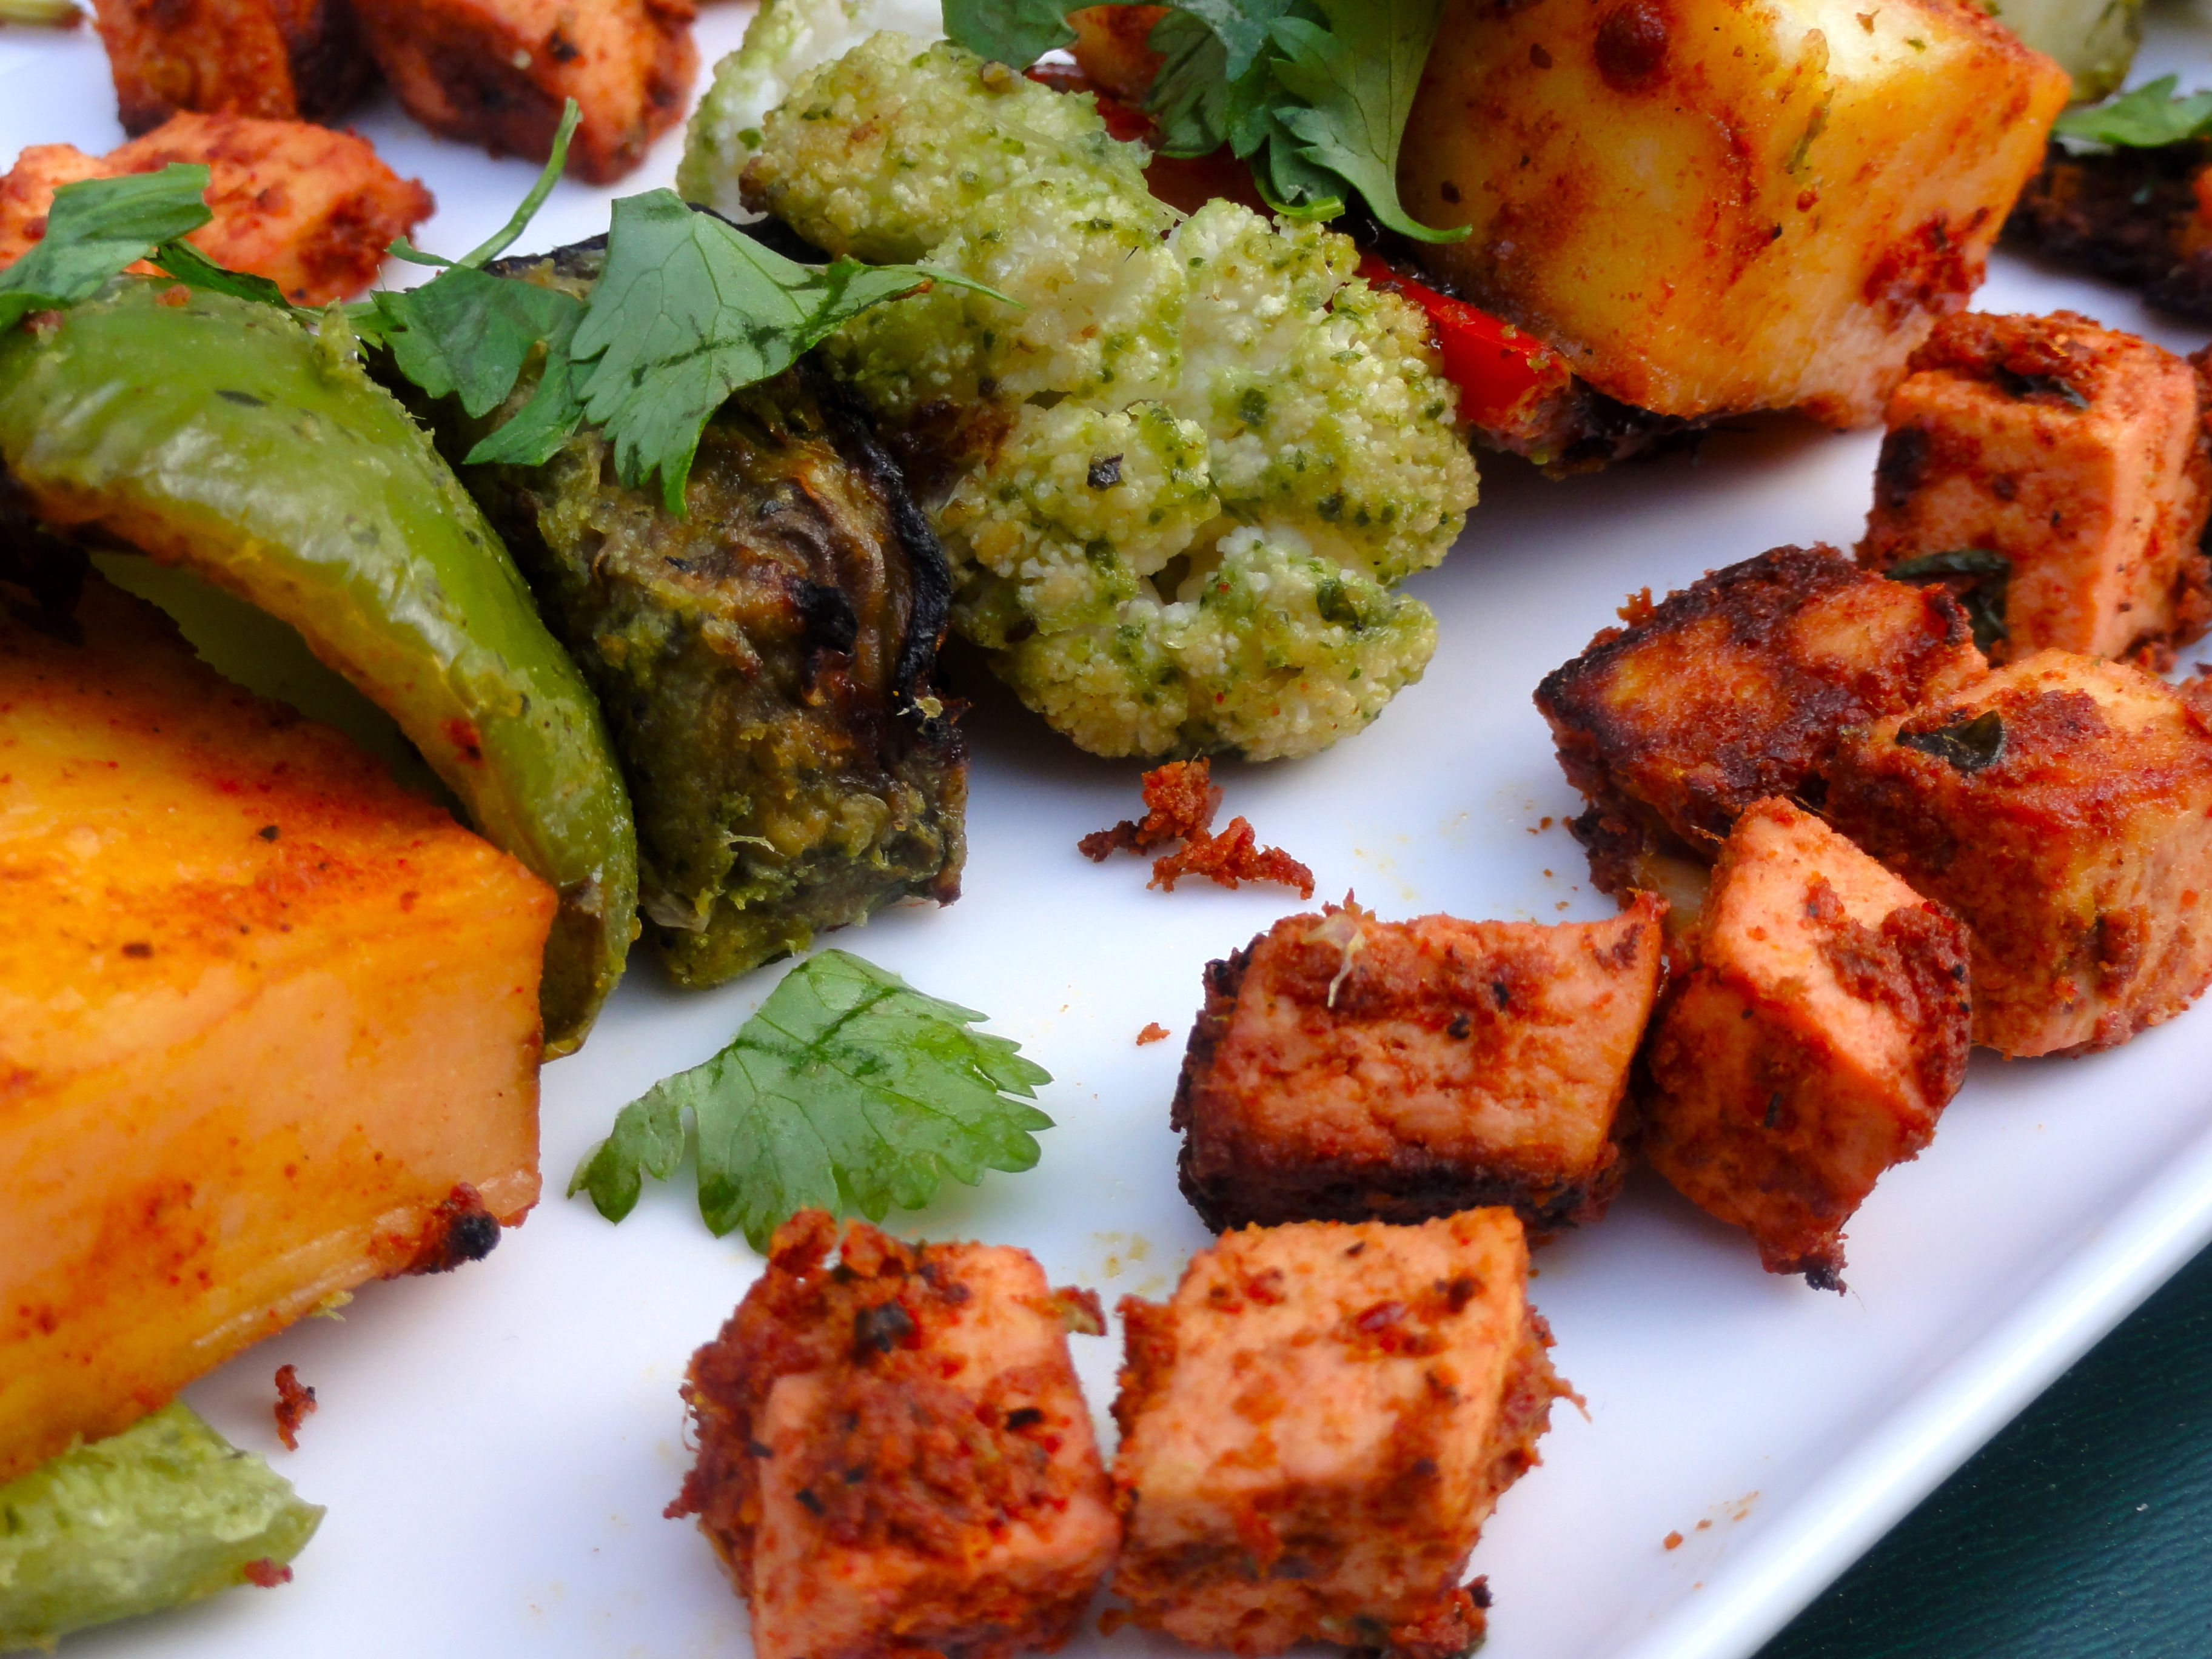 Indian bbq hariyali vegetable kebobs cilantrogingergarlic if using a bbq grill forumfinder Image collections